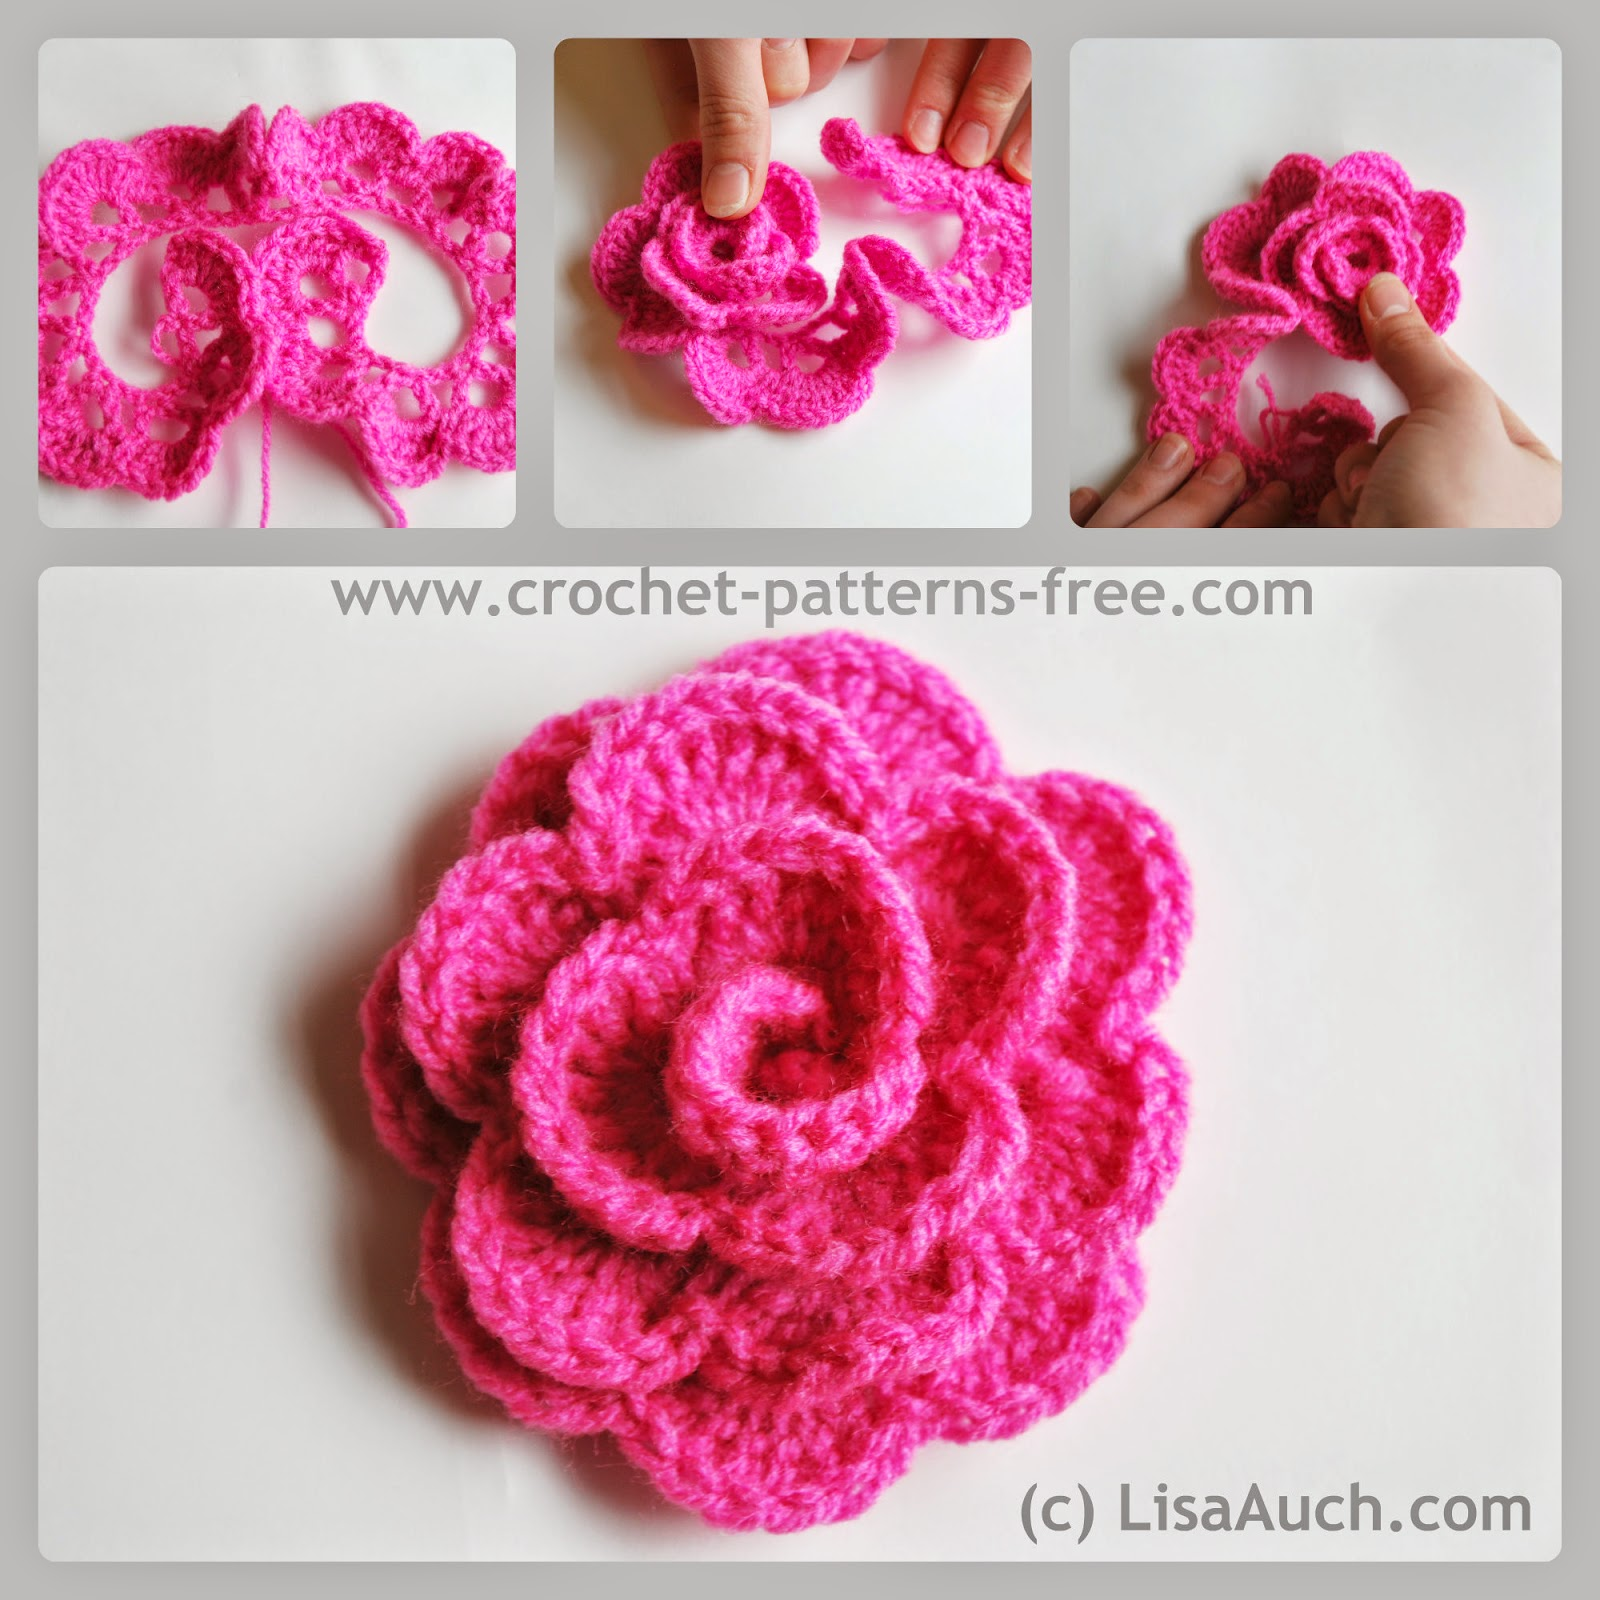 Simple Crochet Flower Pattern Free : Rose Hip Blog Crochet Flower Pattern 2016 Car Release Date